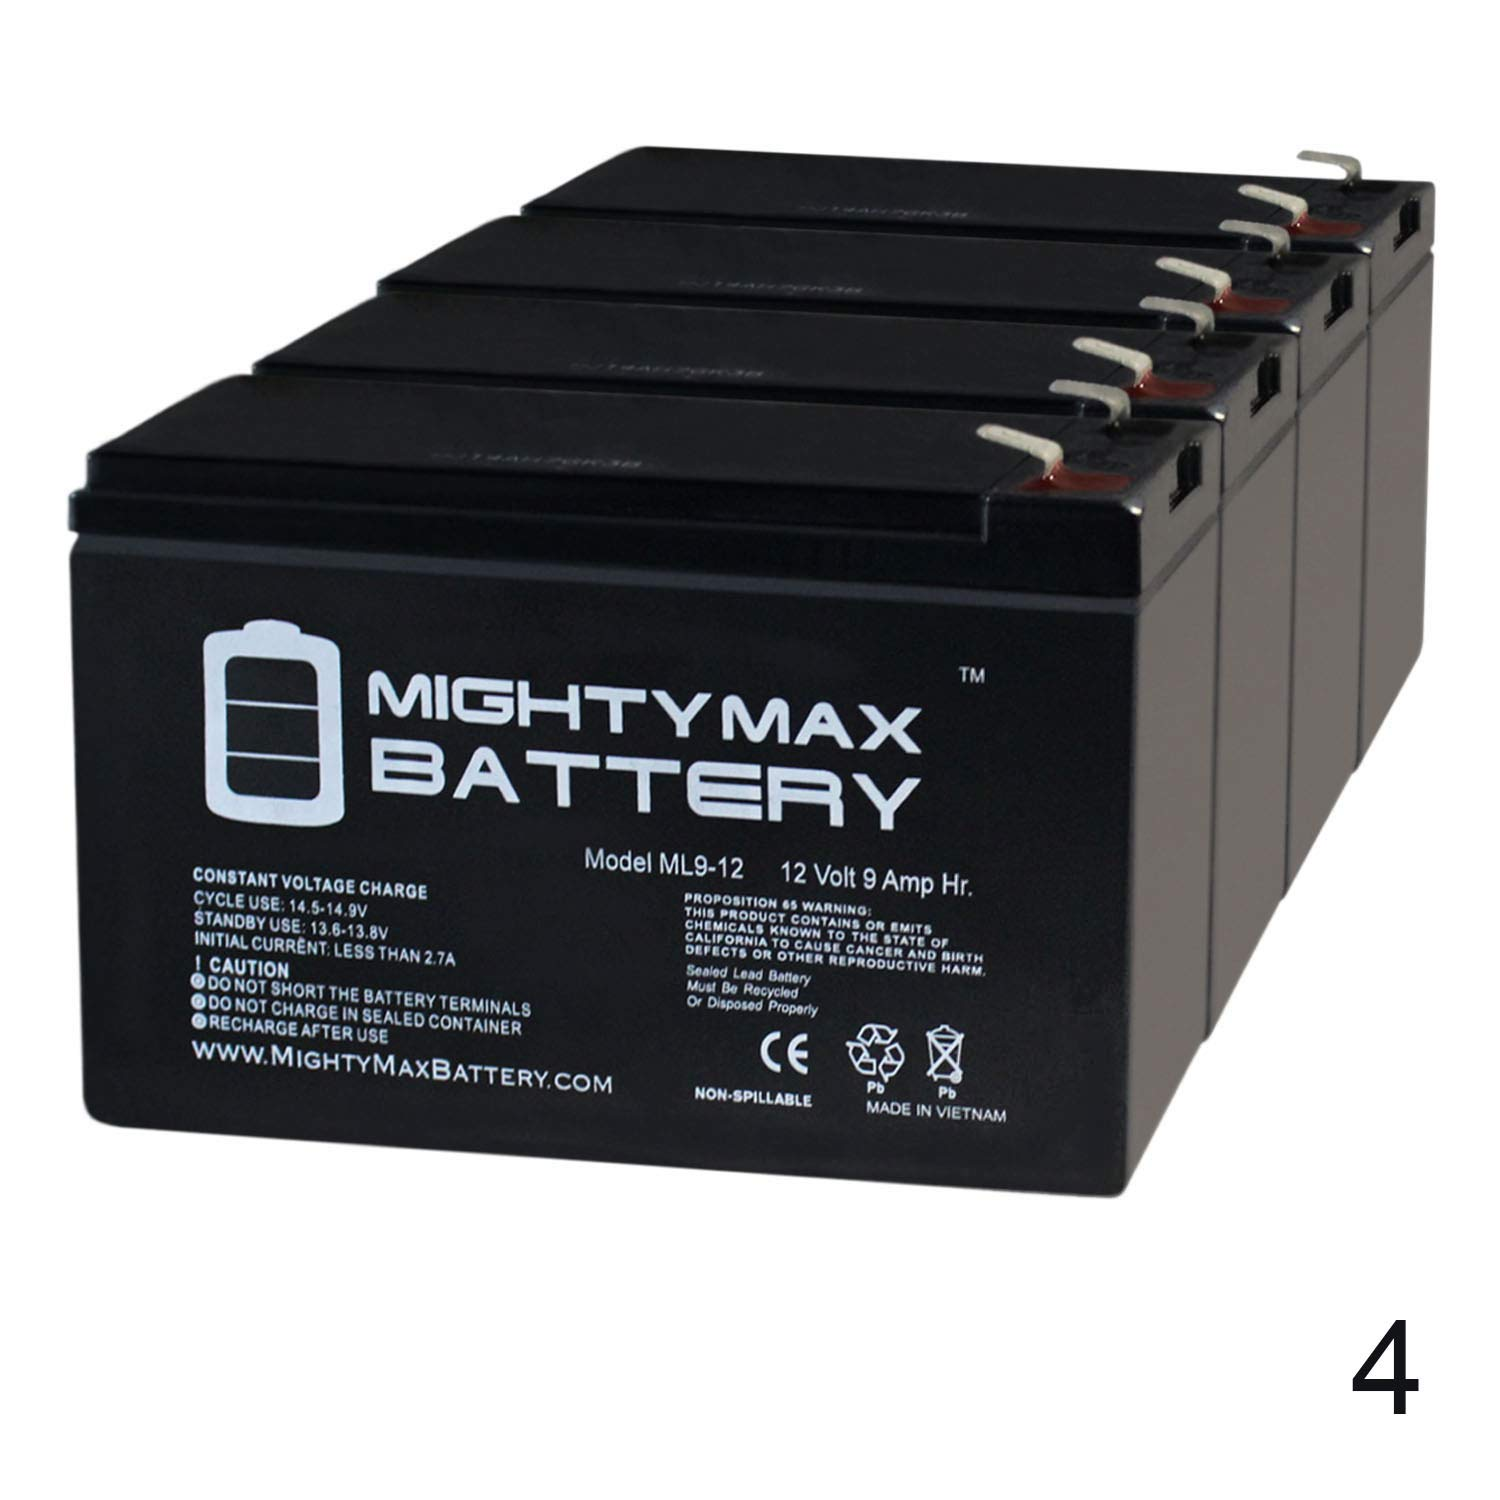 Mighty Max Battery ML9-12 - 12 Volt 9 AH SLA Battery - Pack of 4 Brand Product by Mighty Max Battery